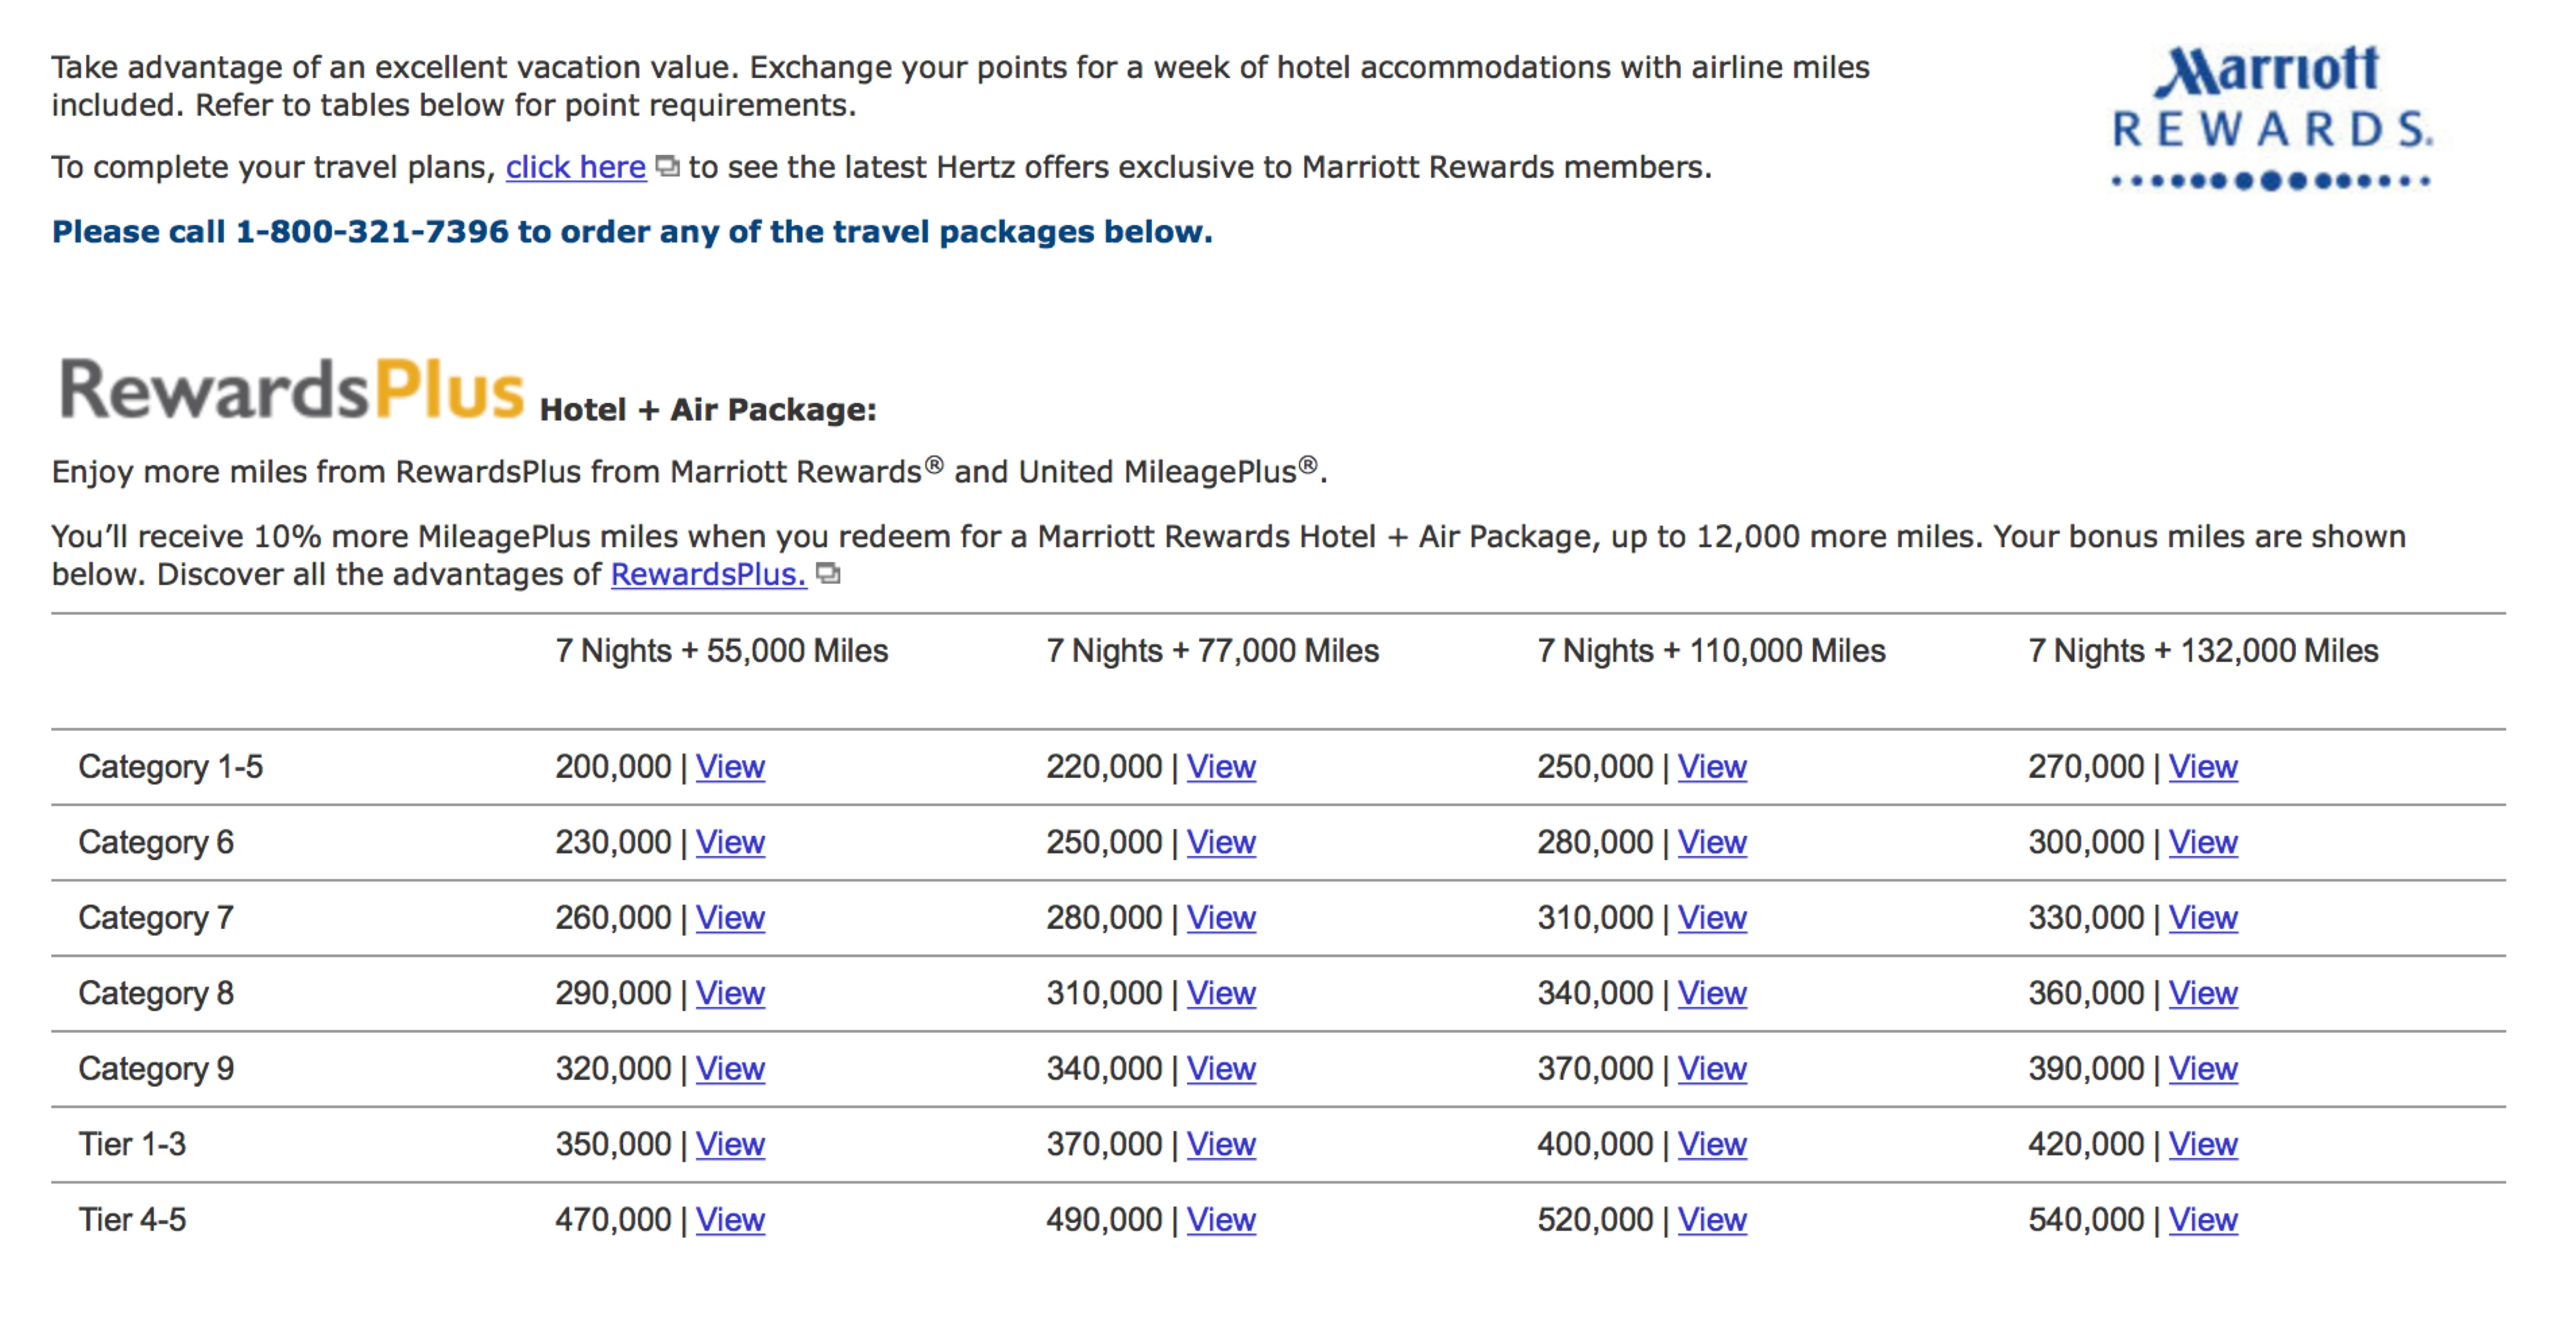 A complete guide to the marriott travel packages the best way to what are marriott travel packages xflitez Choice Image